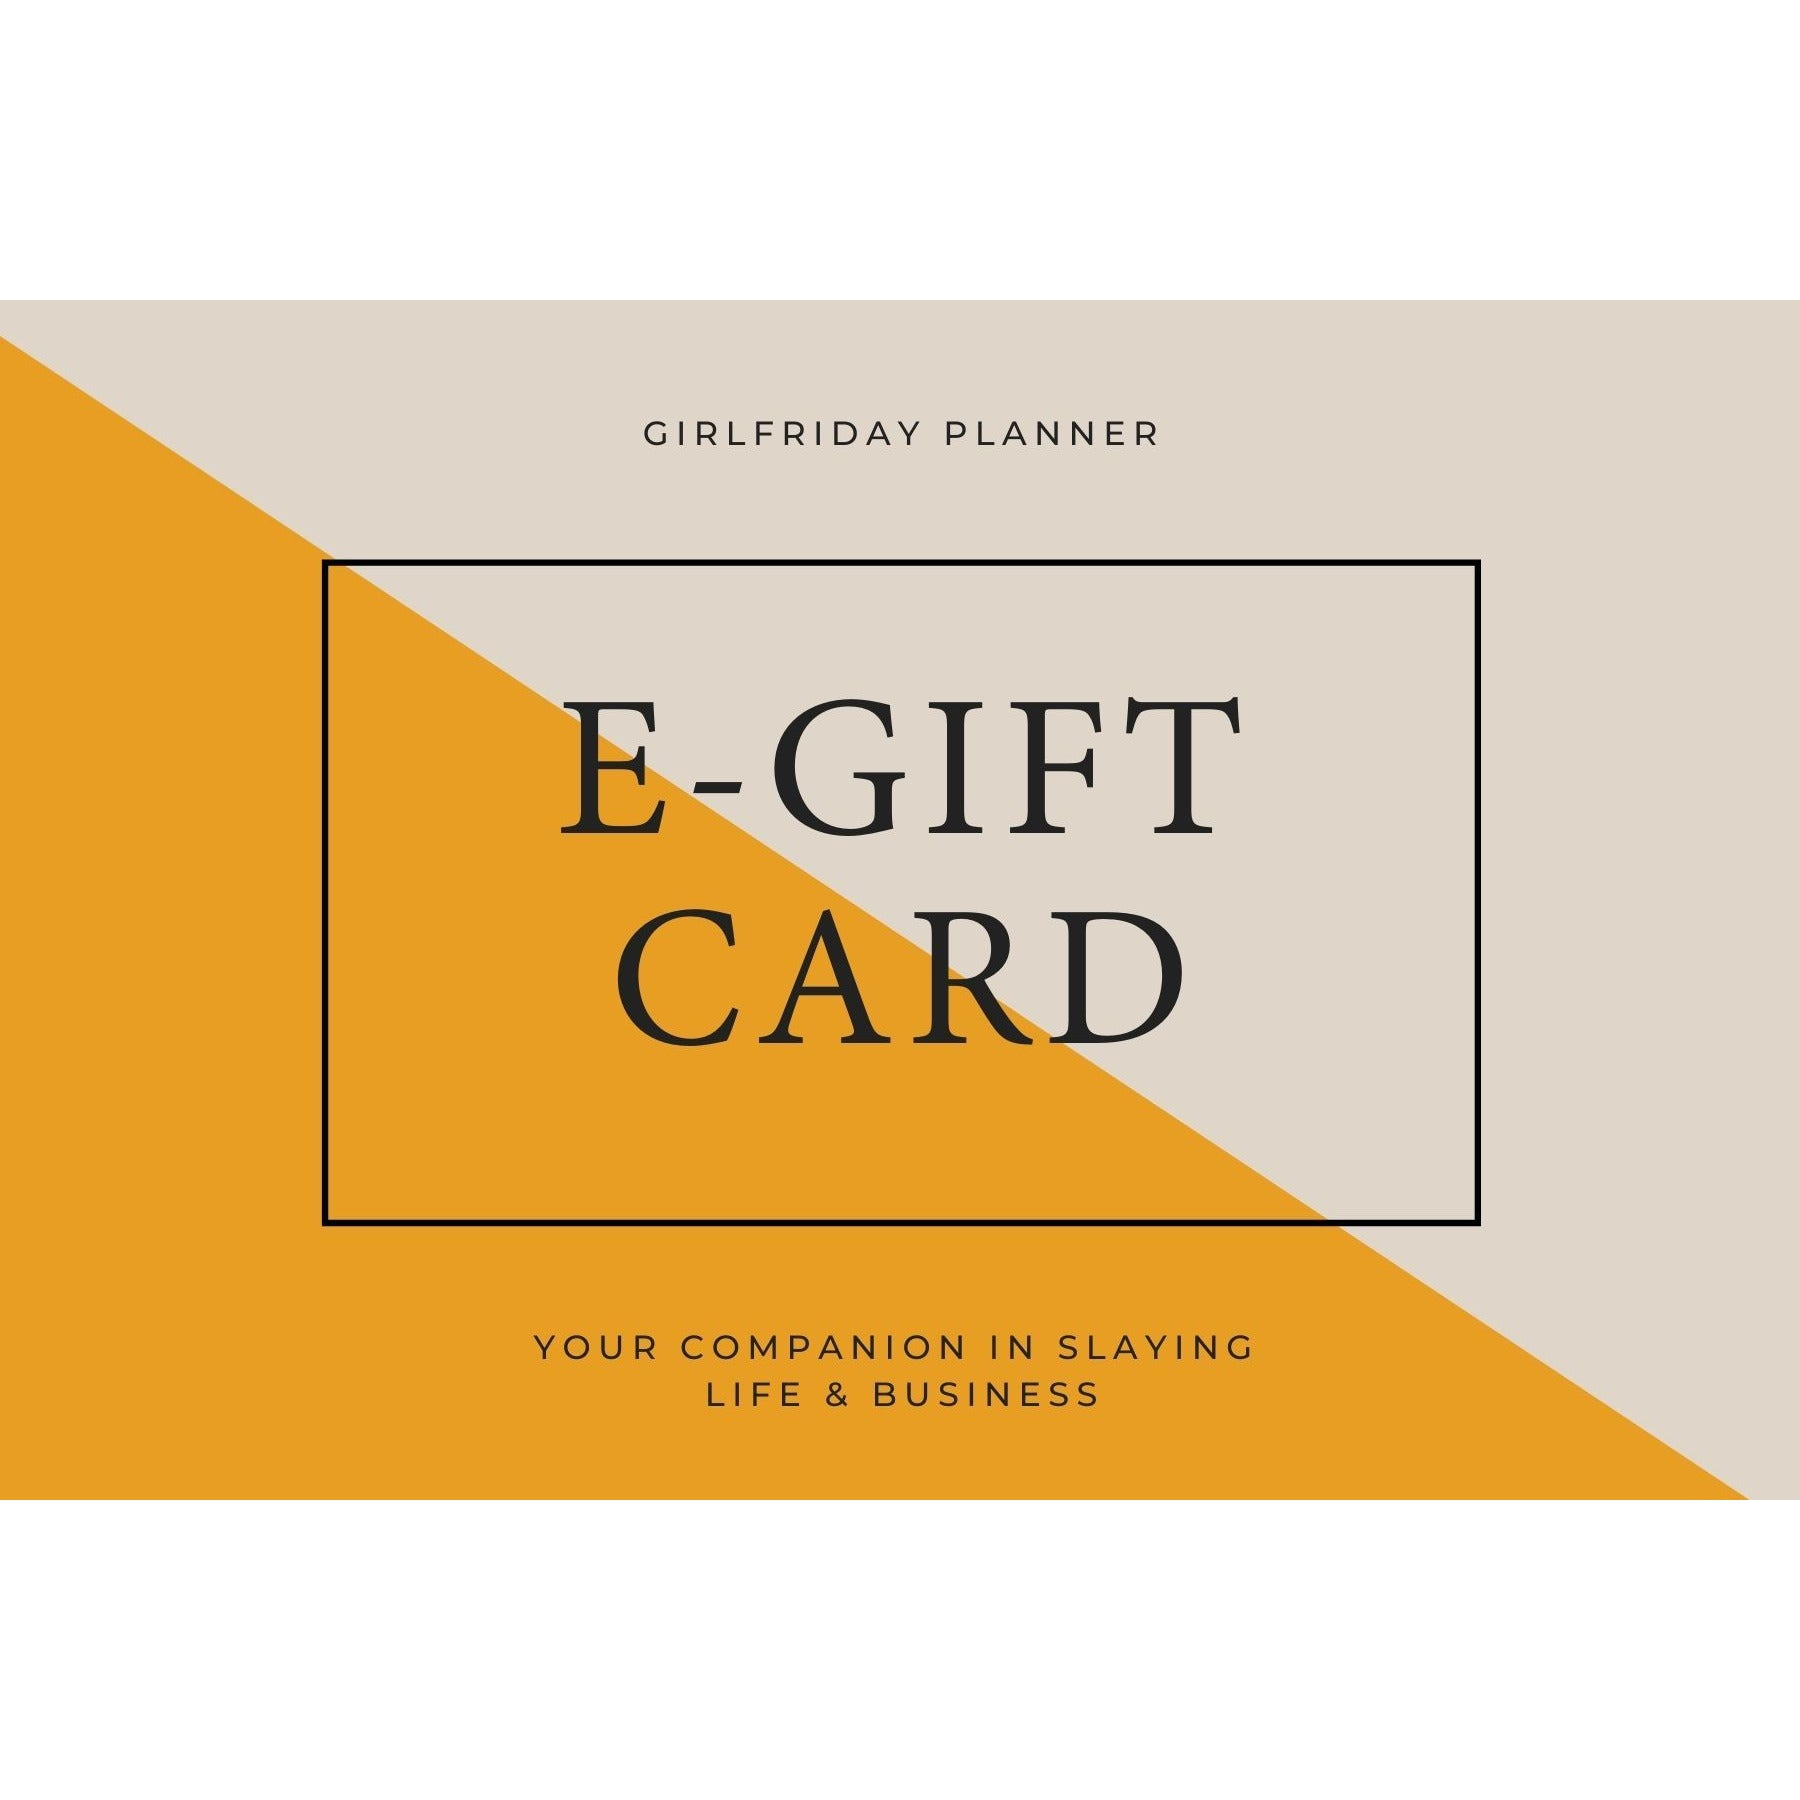 GirlFriday Planner Gift Card